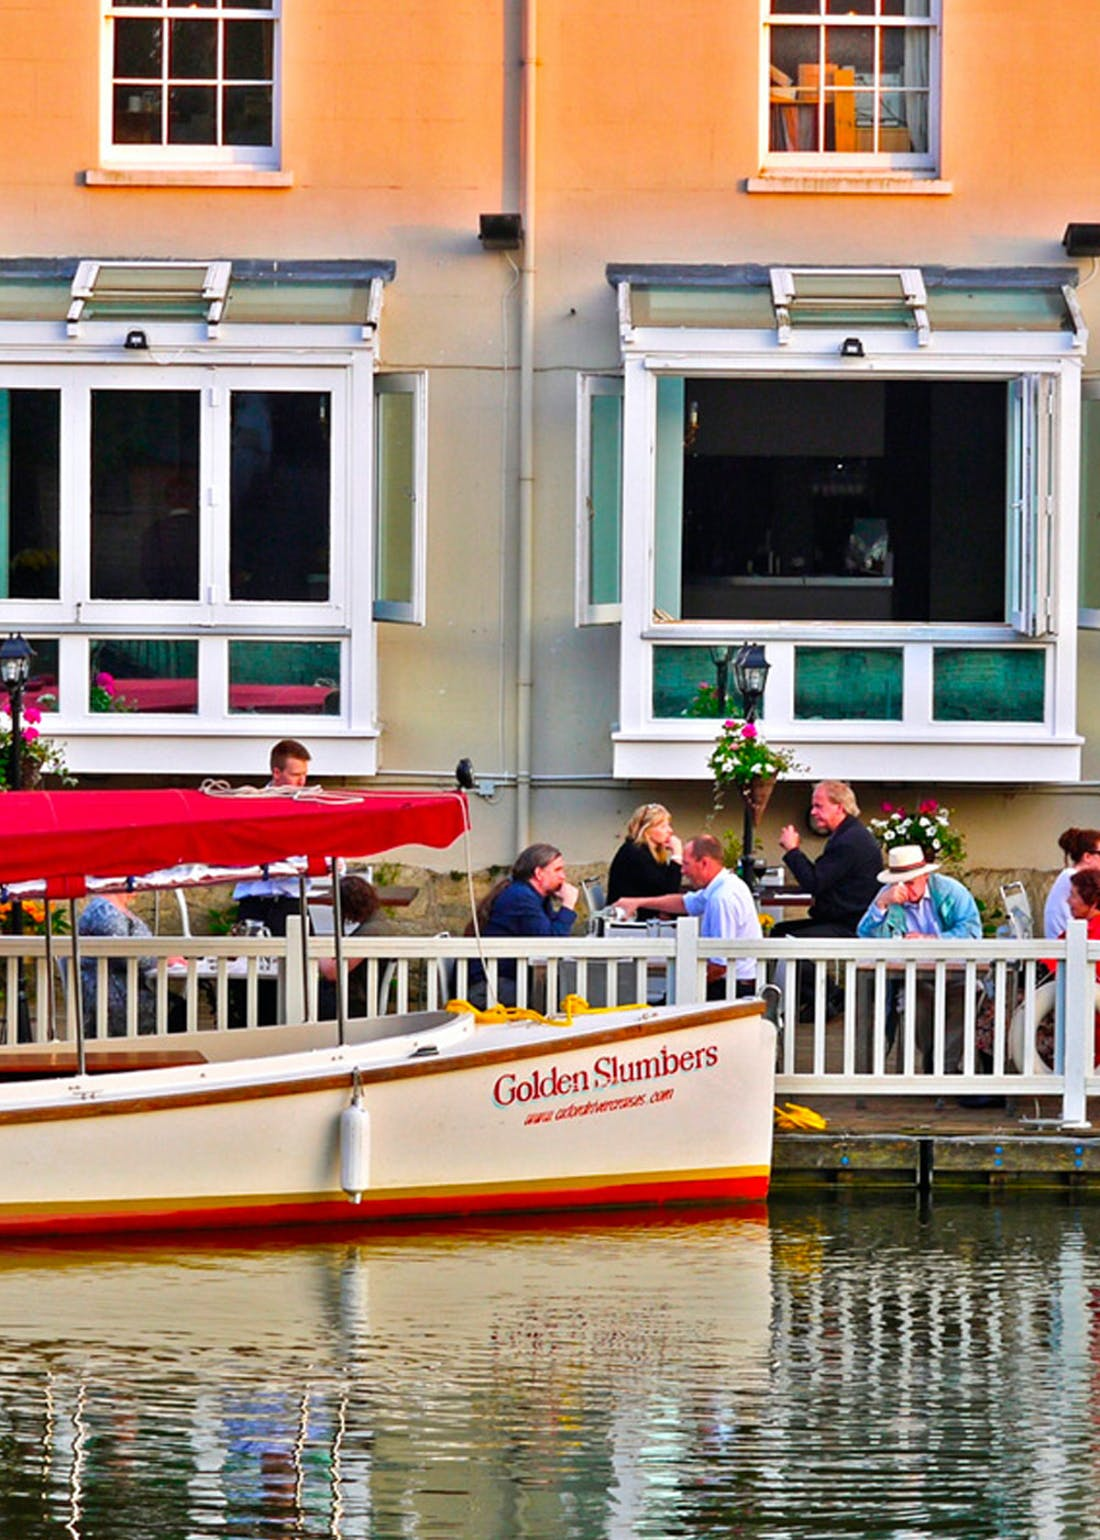 Virgin Experience Days Cocktails for 2 on the Riverbank in Oxford